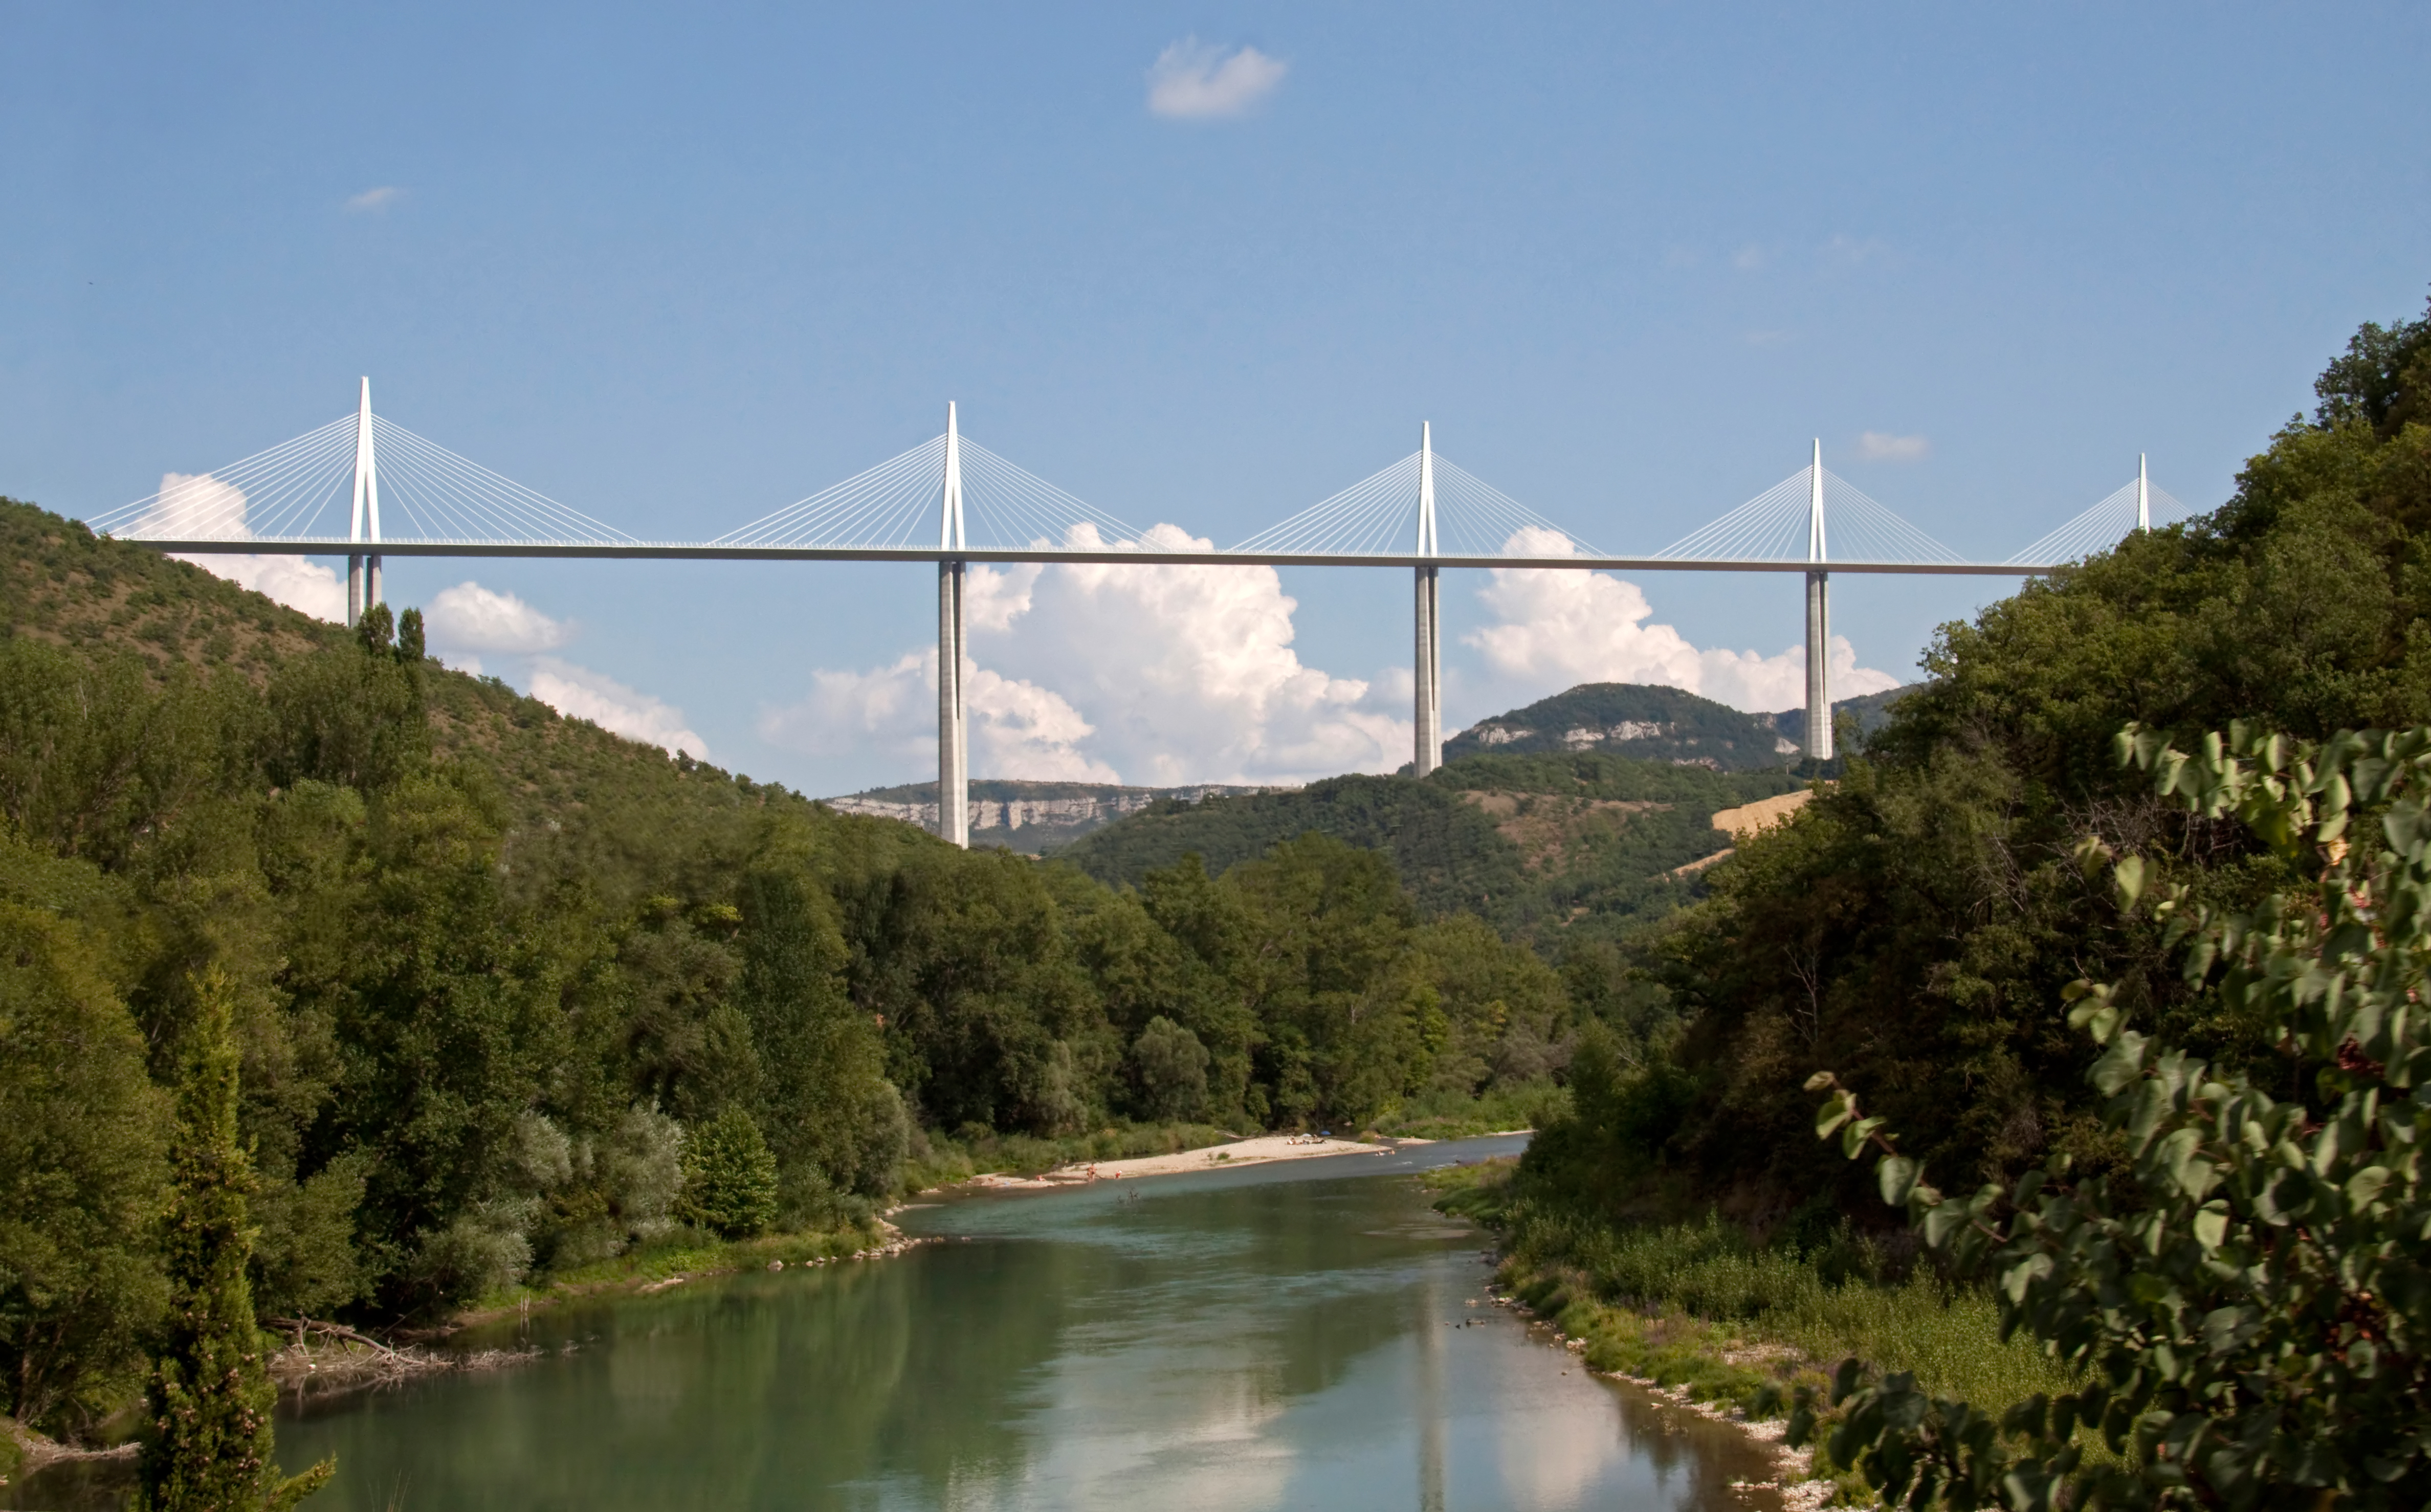 Millau_Viaduct_over_the_River_Tarn_(3855053467)